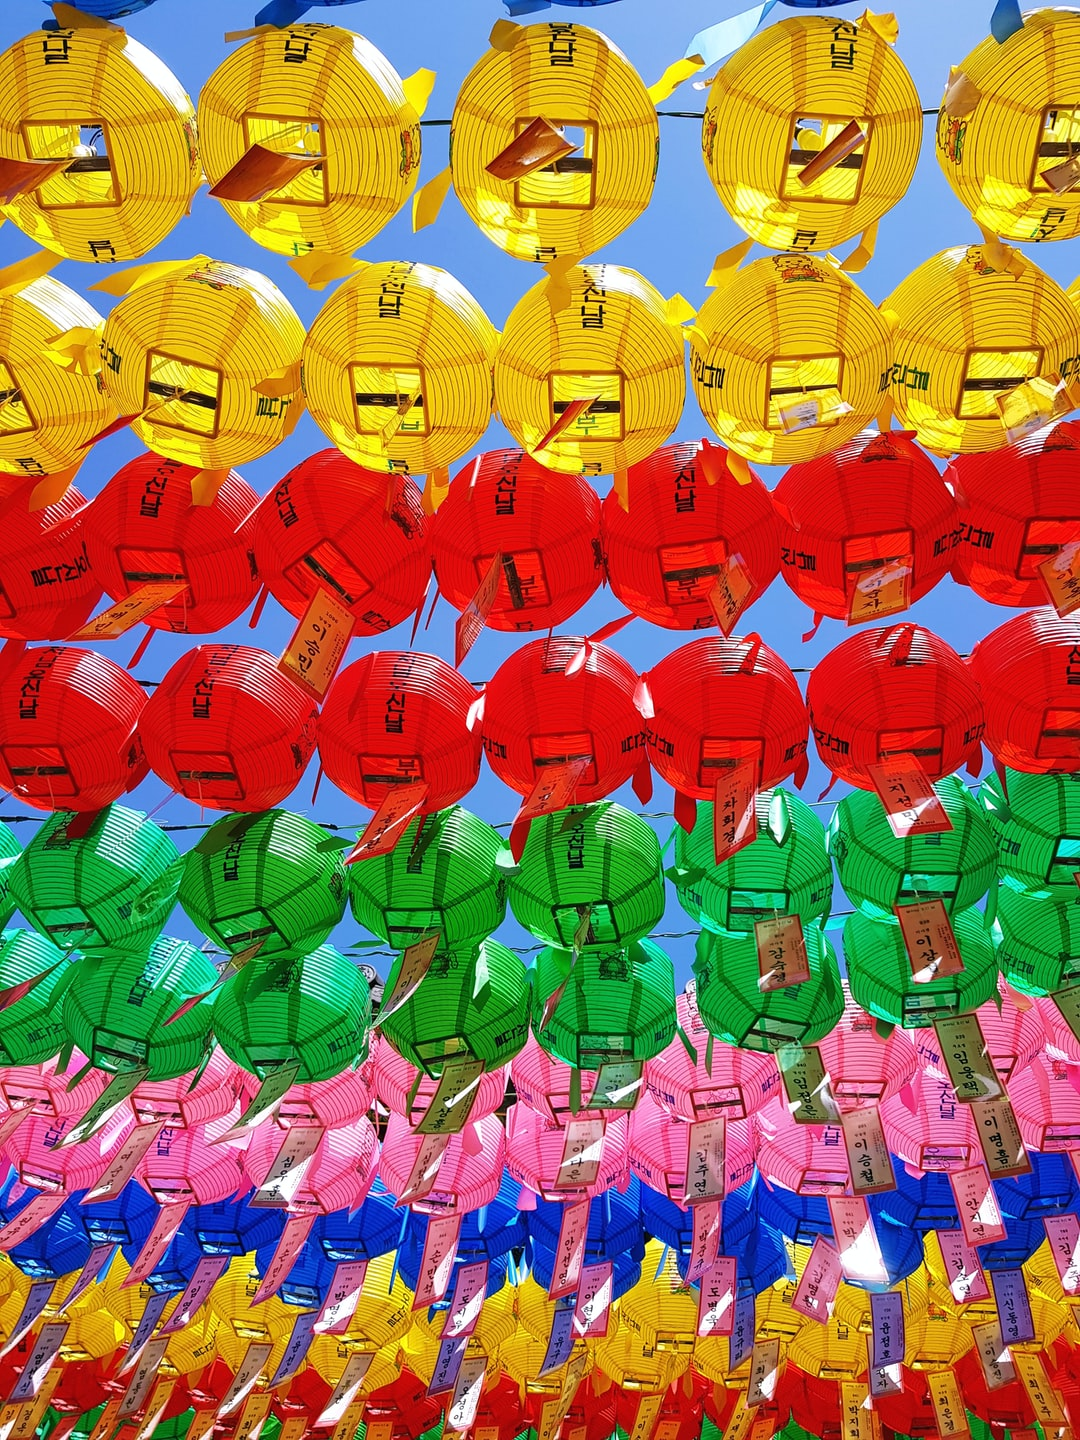 The best times to visit Jogyesa Temple are Buddha's birthday or during the Lotus Lantern Festival when the courtyard of the temple is decorated with paper lanterns. This photo took at the jogyesa temple in seoul city.